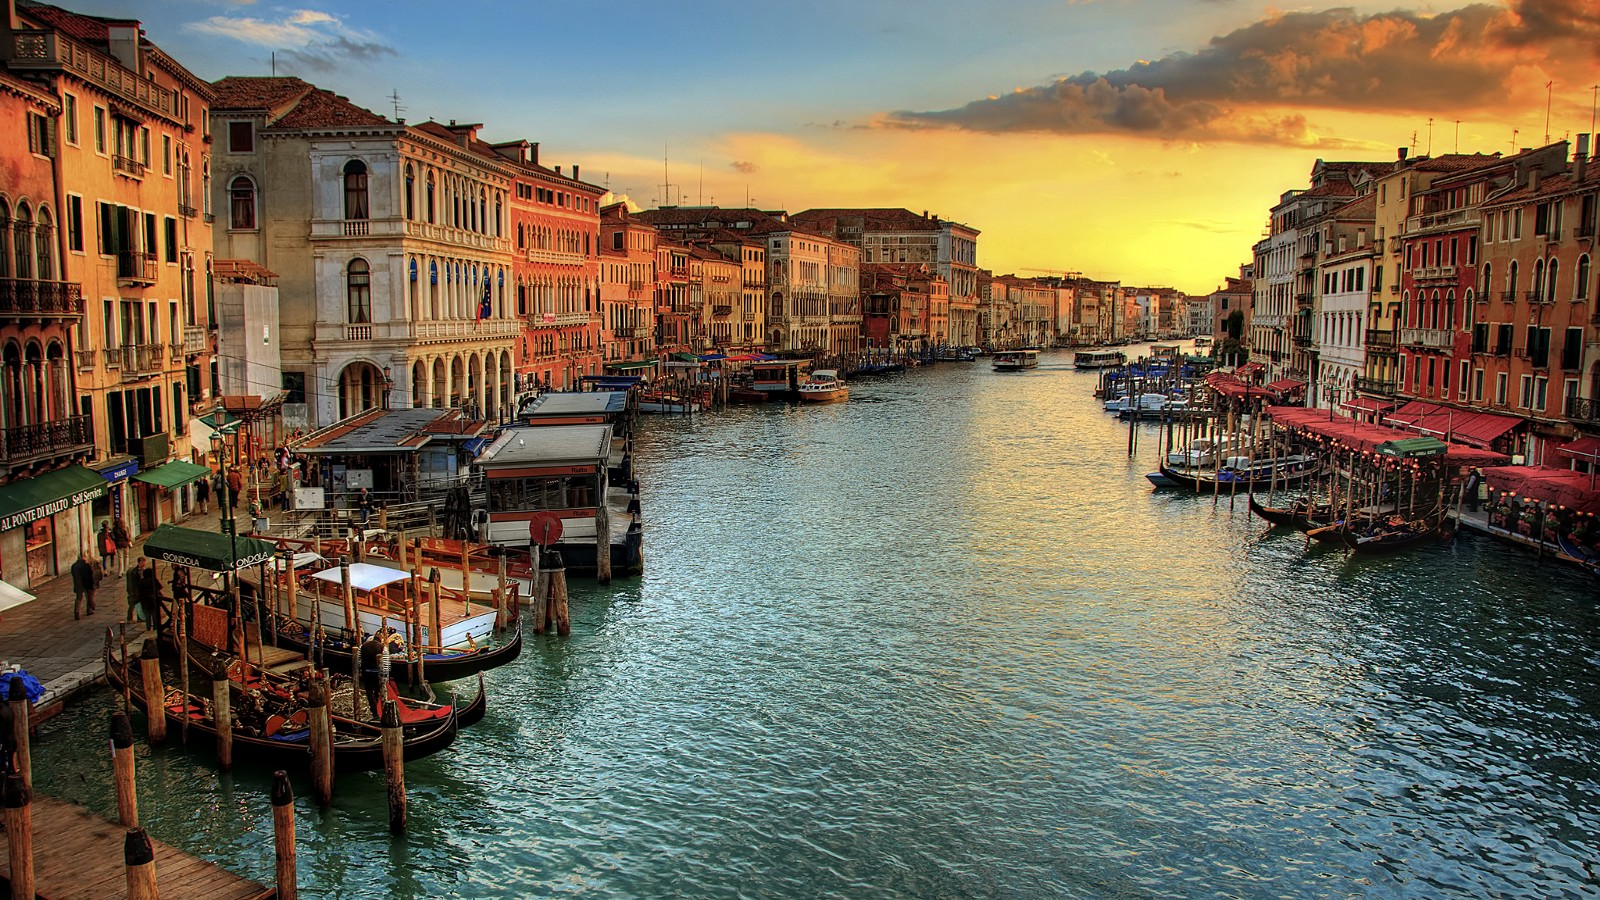 From the Rialto Bridge, looking down the Grand Canal in Venice, Italy